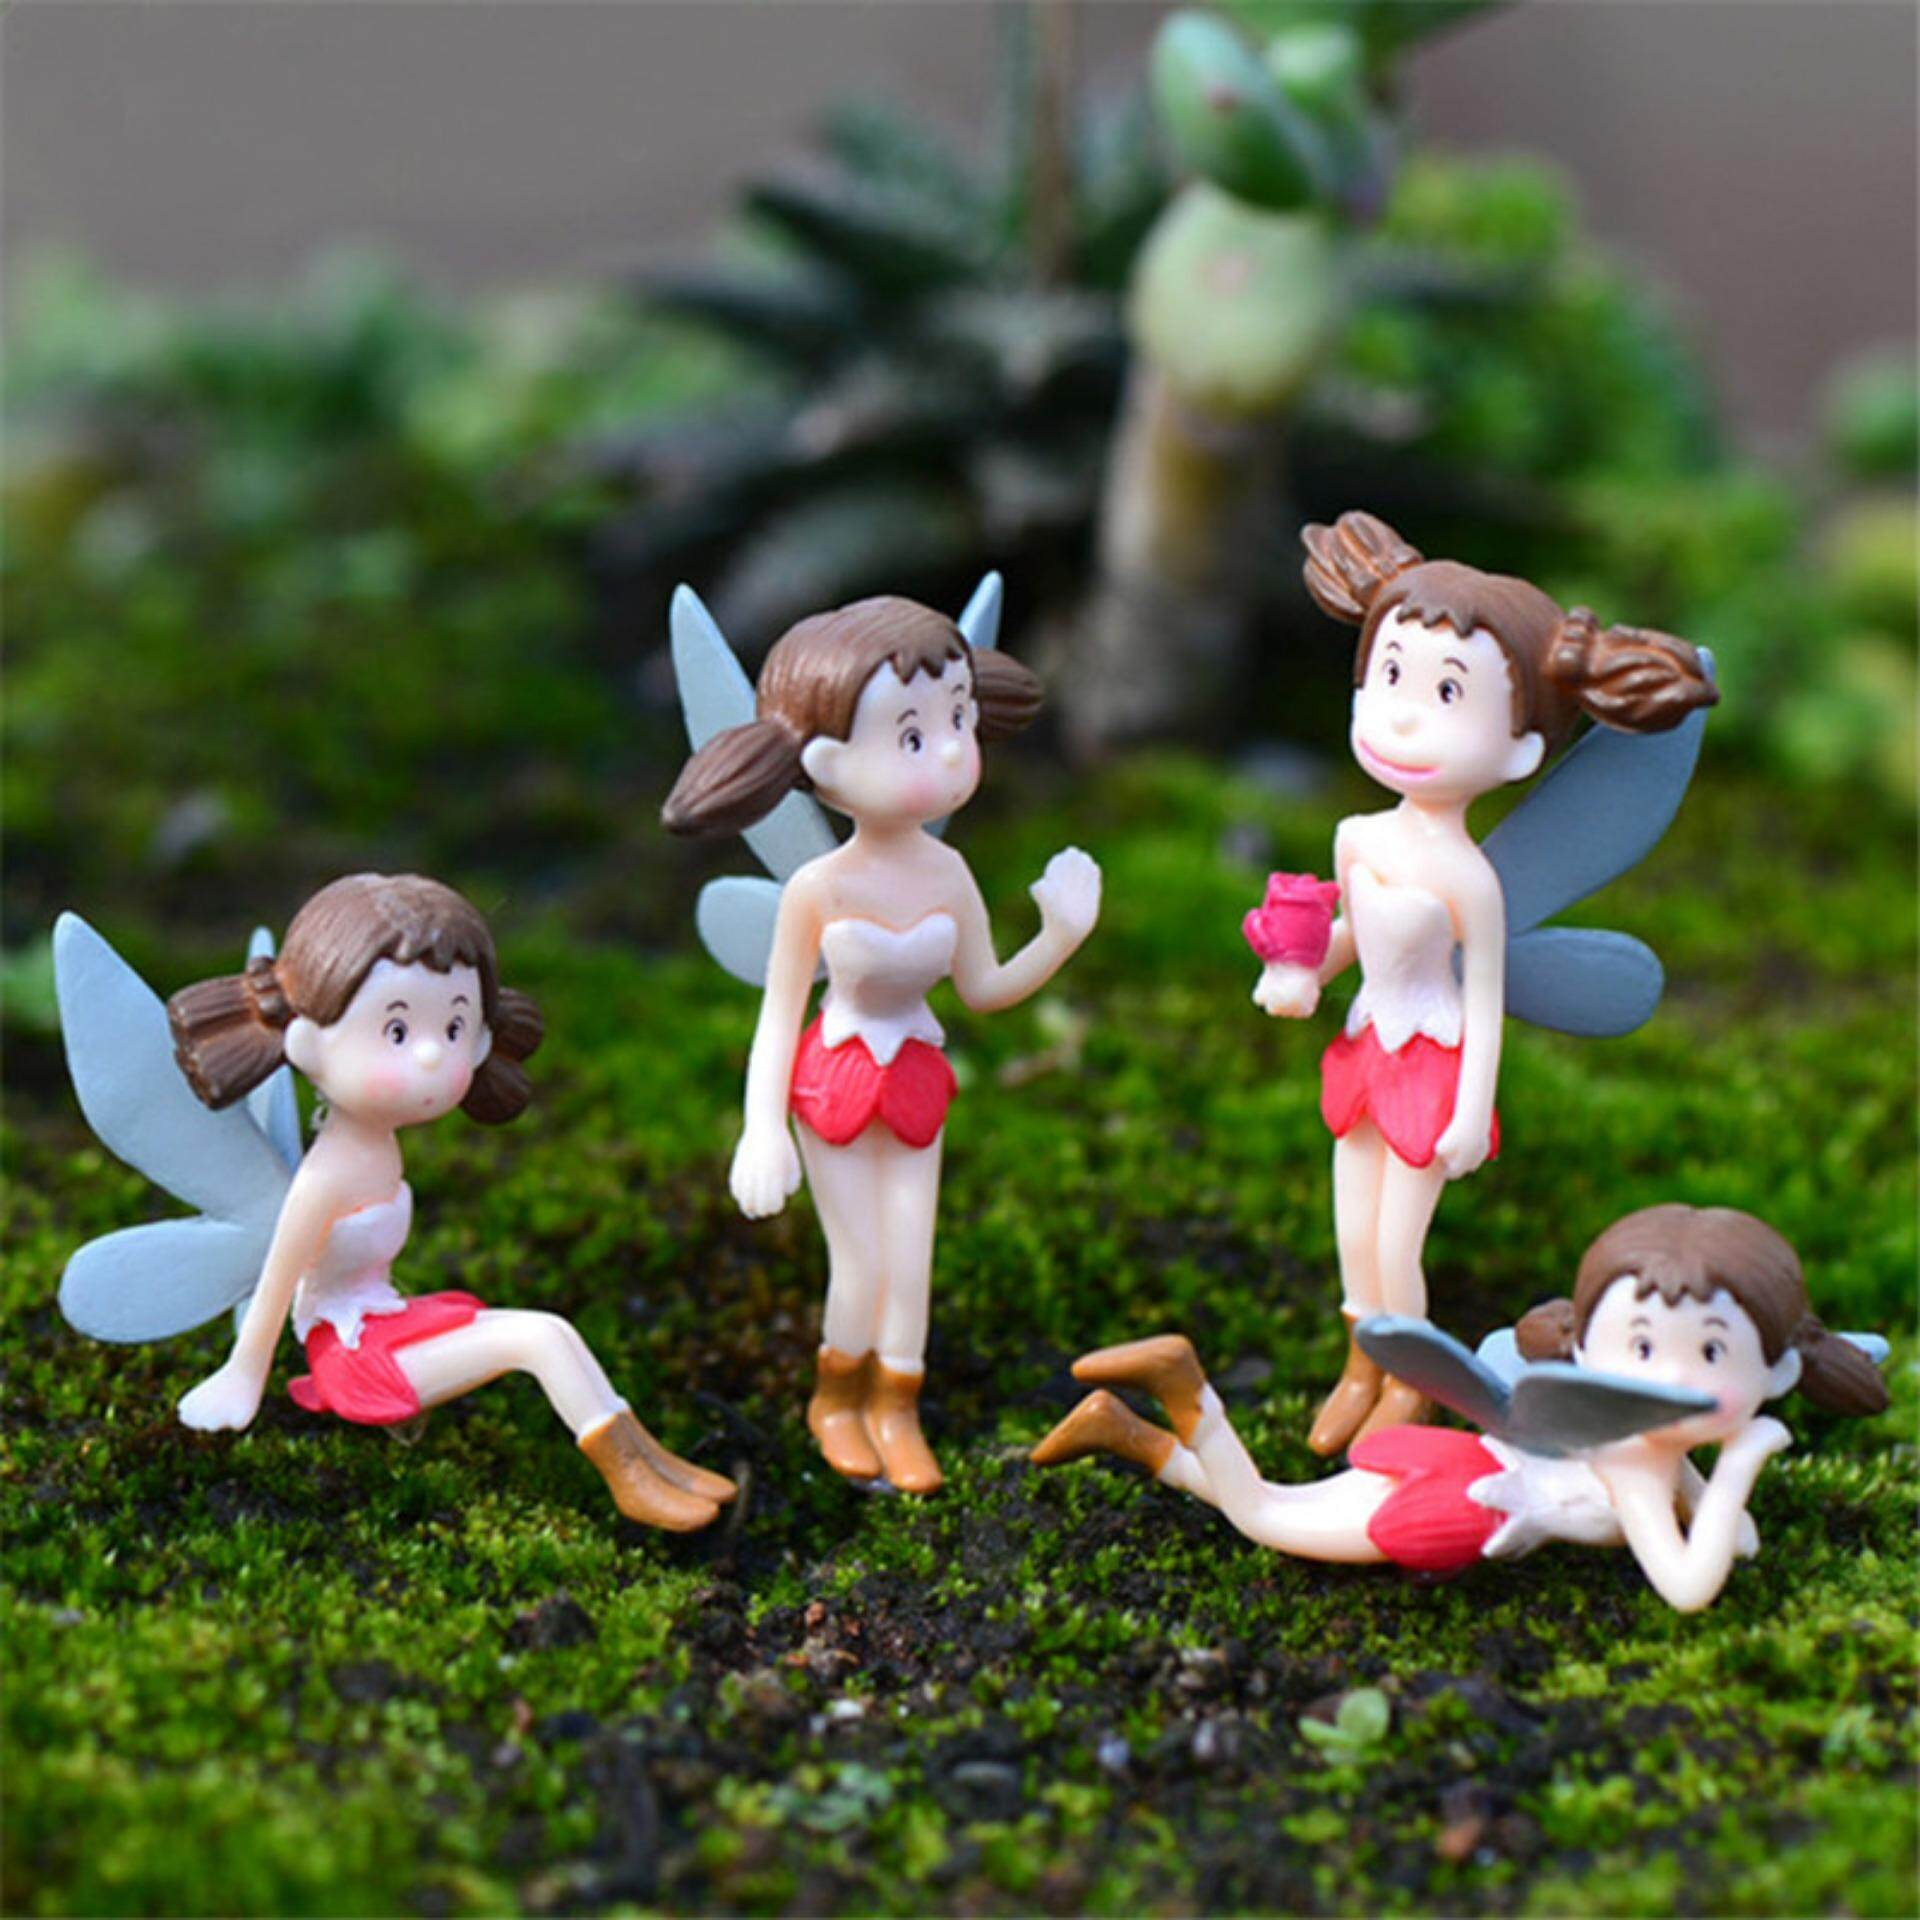 Fairy Garden Figurines Flying girl Resin Crafts Gnomes Moss Terrariums Decorations